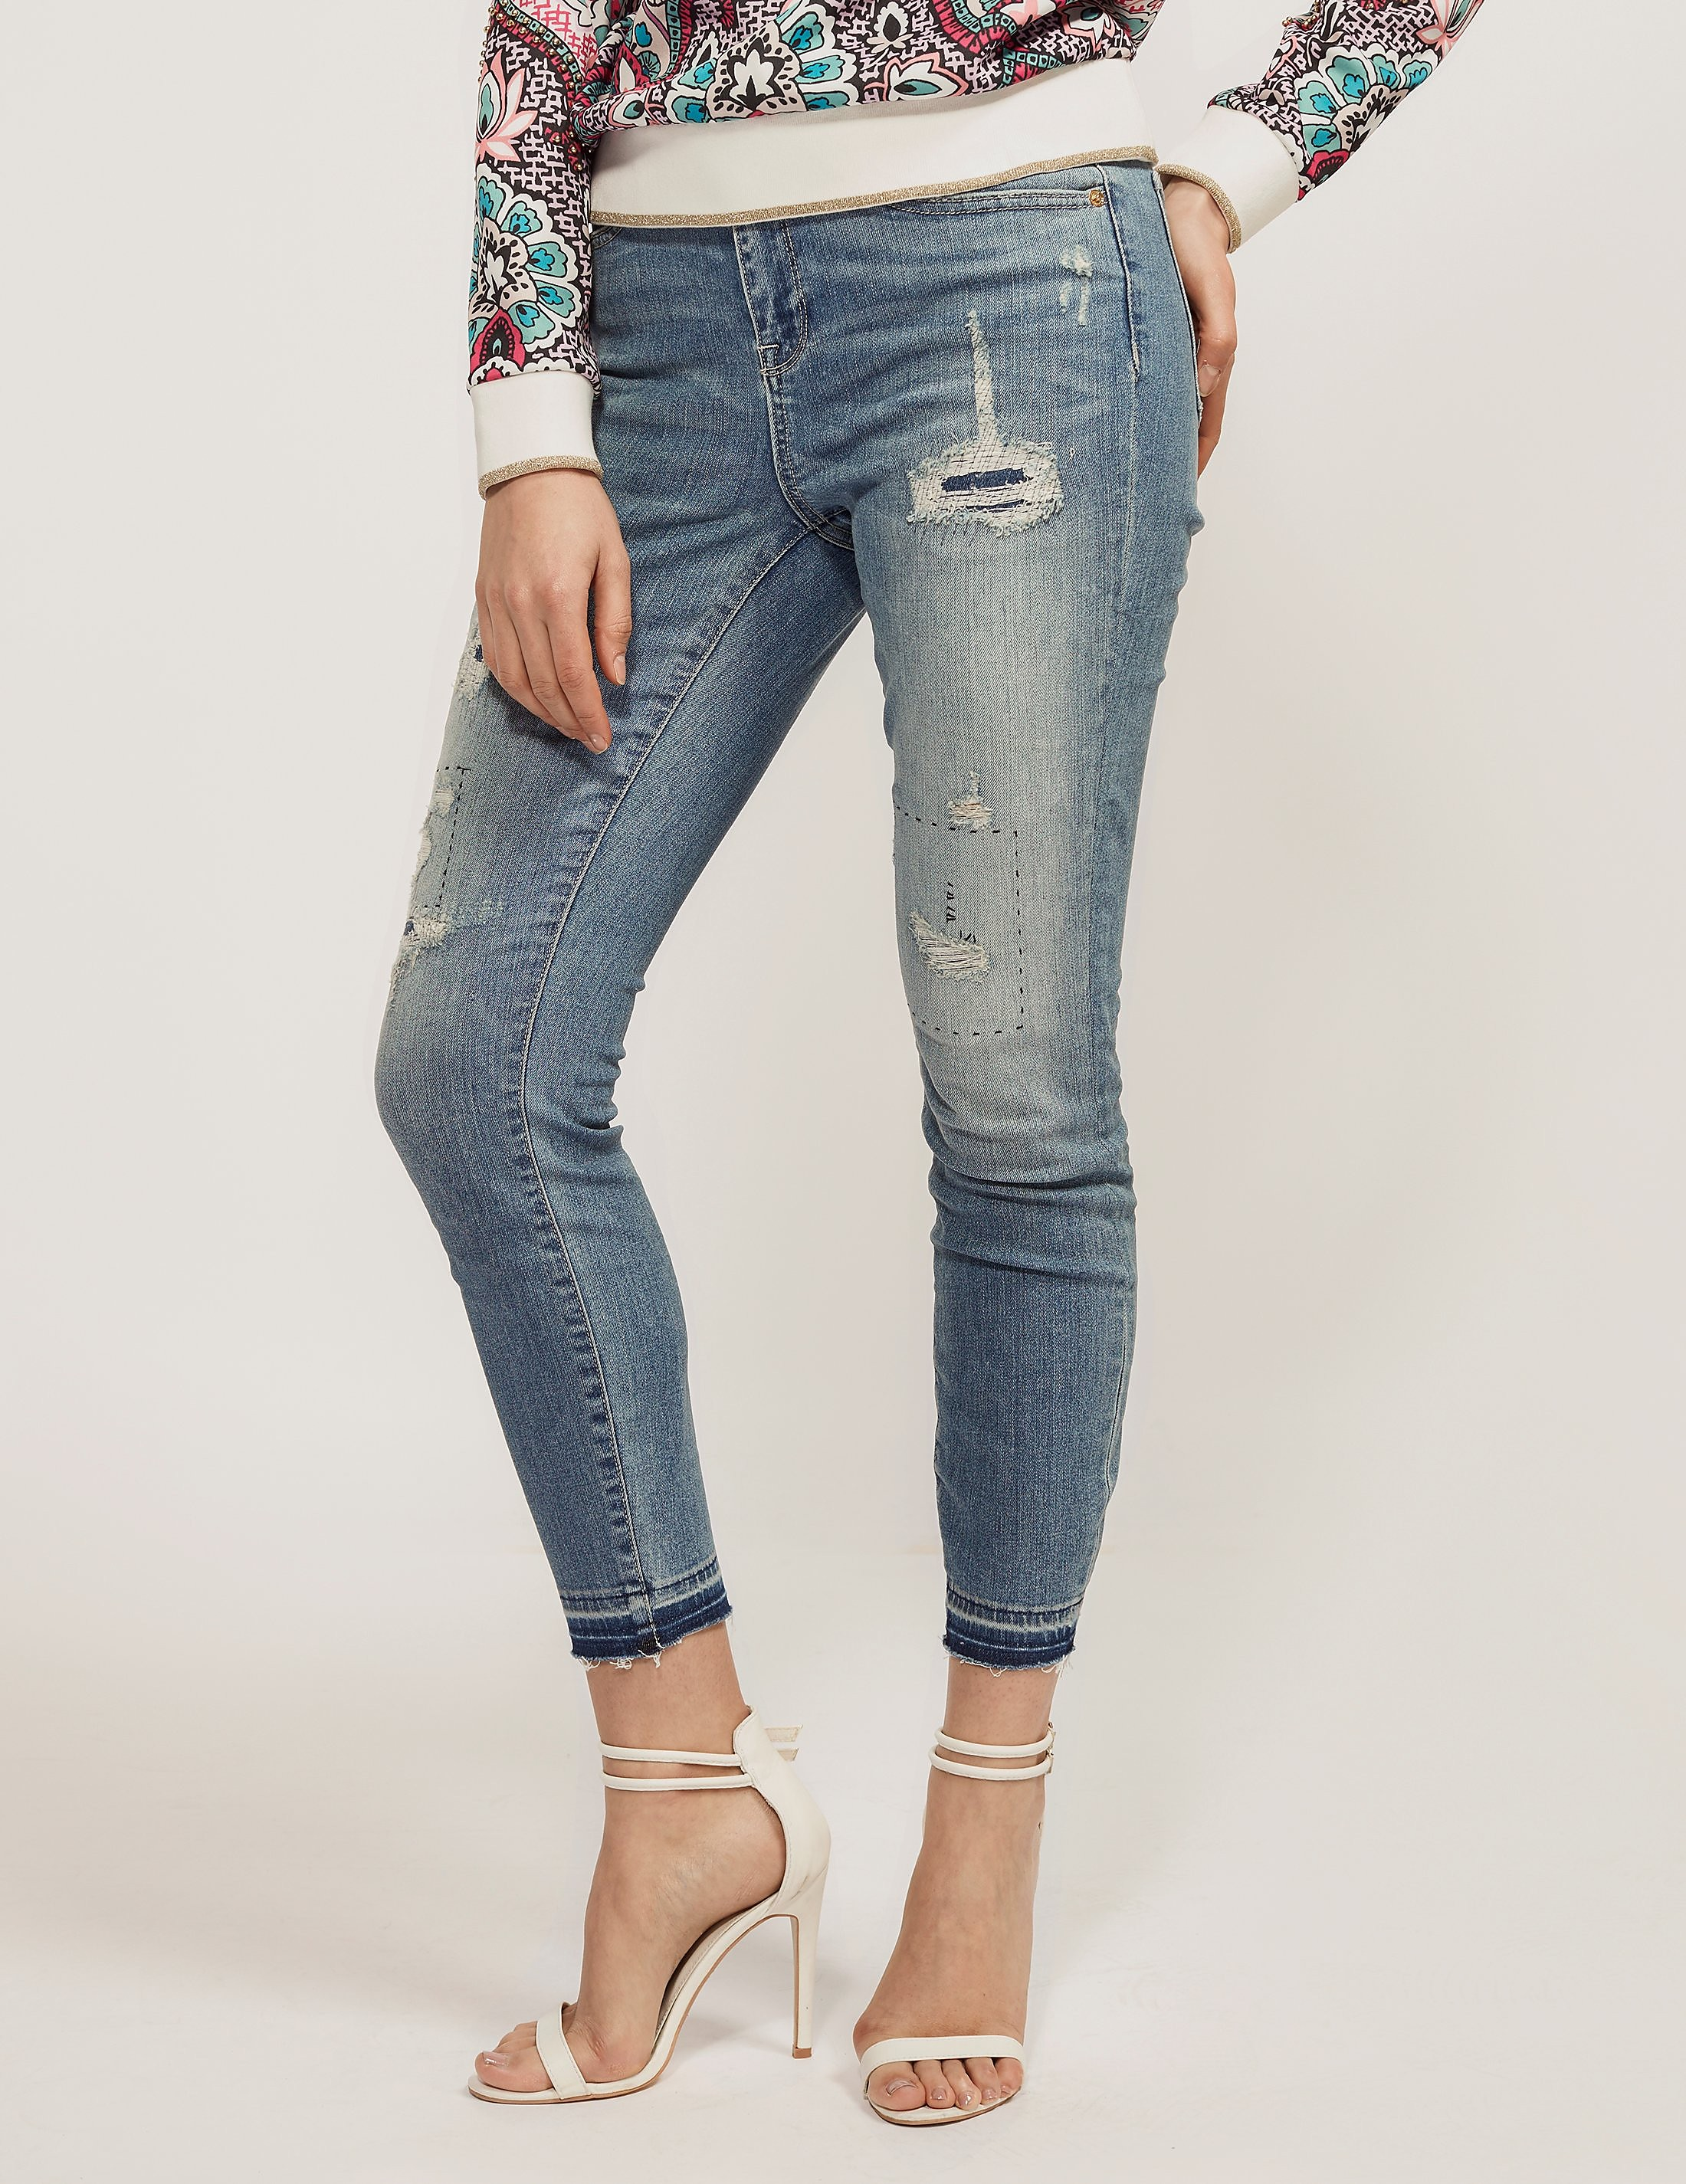 Juicy Couture Desty Repair Denim Embroidered Skinny Jean